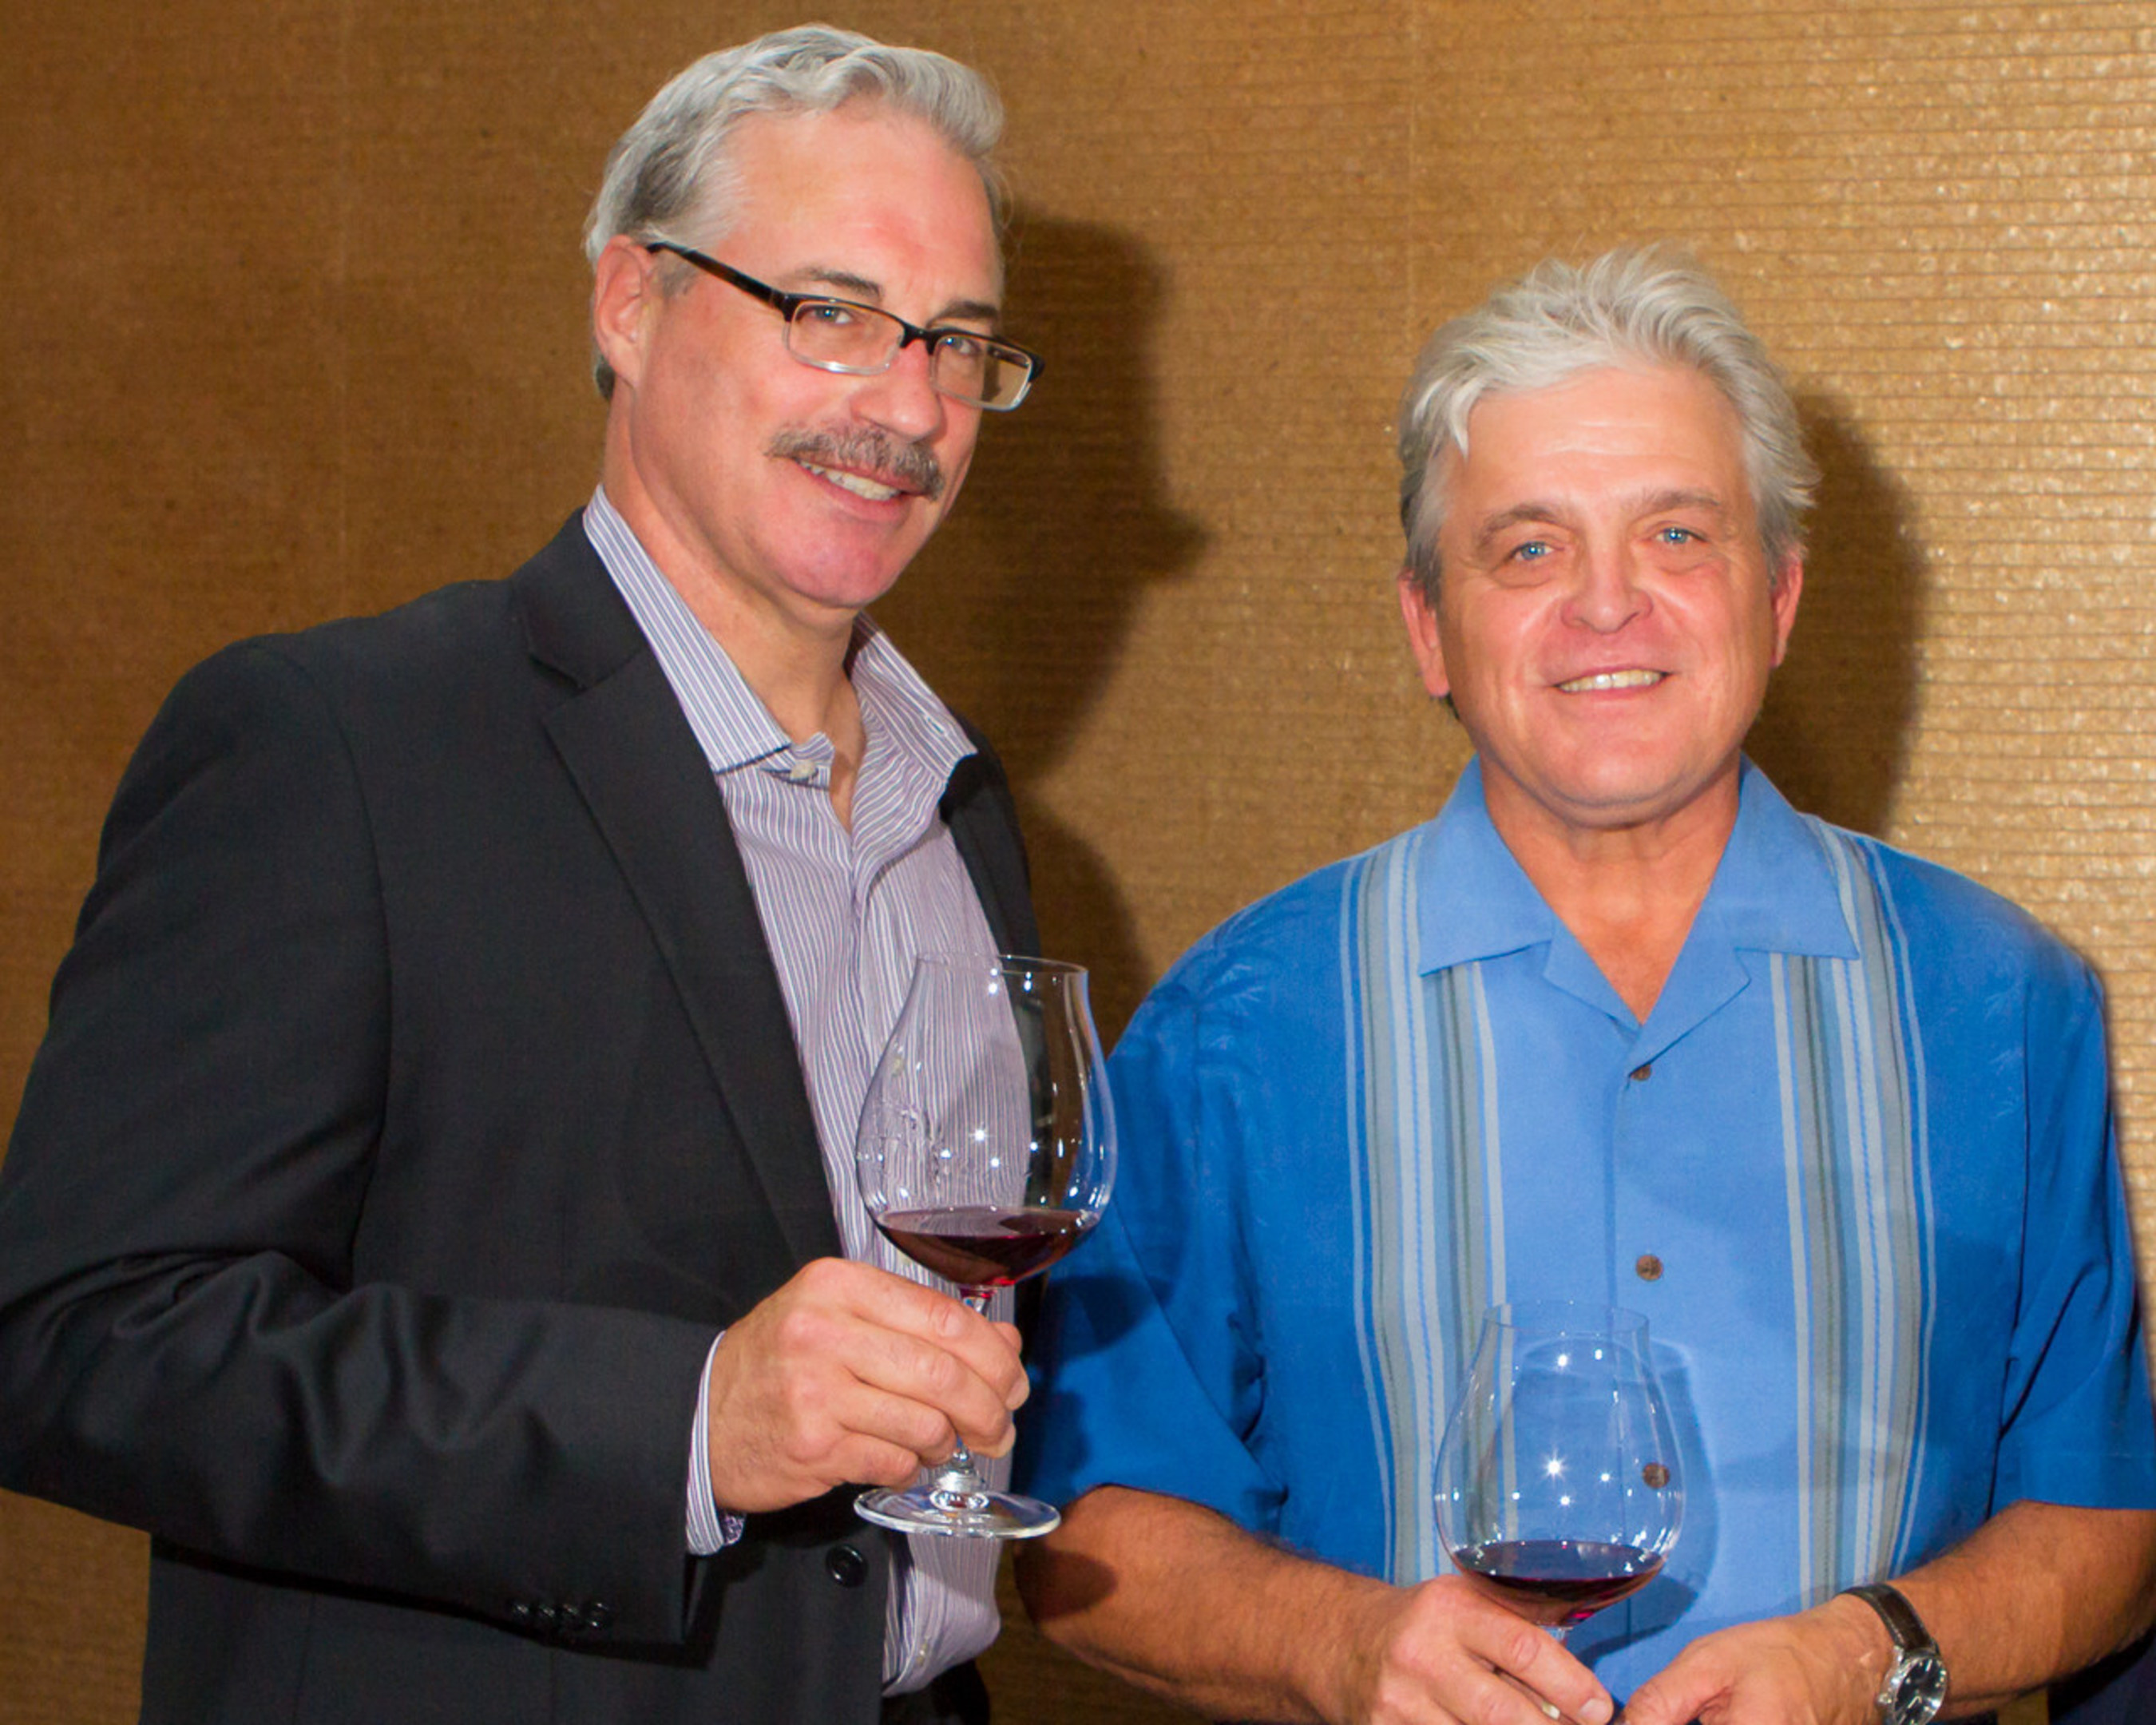 (L-R) Tony Rynders, Consulting Winemaker of Panther Creek Cellars and Ken Wright, Founder of Panther Creek Cellars and Ken Wright Cellars. Photo Credit: Chris Bidleman